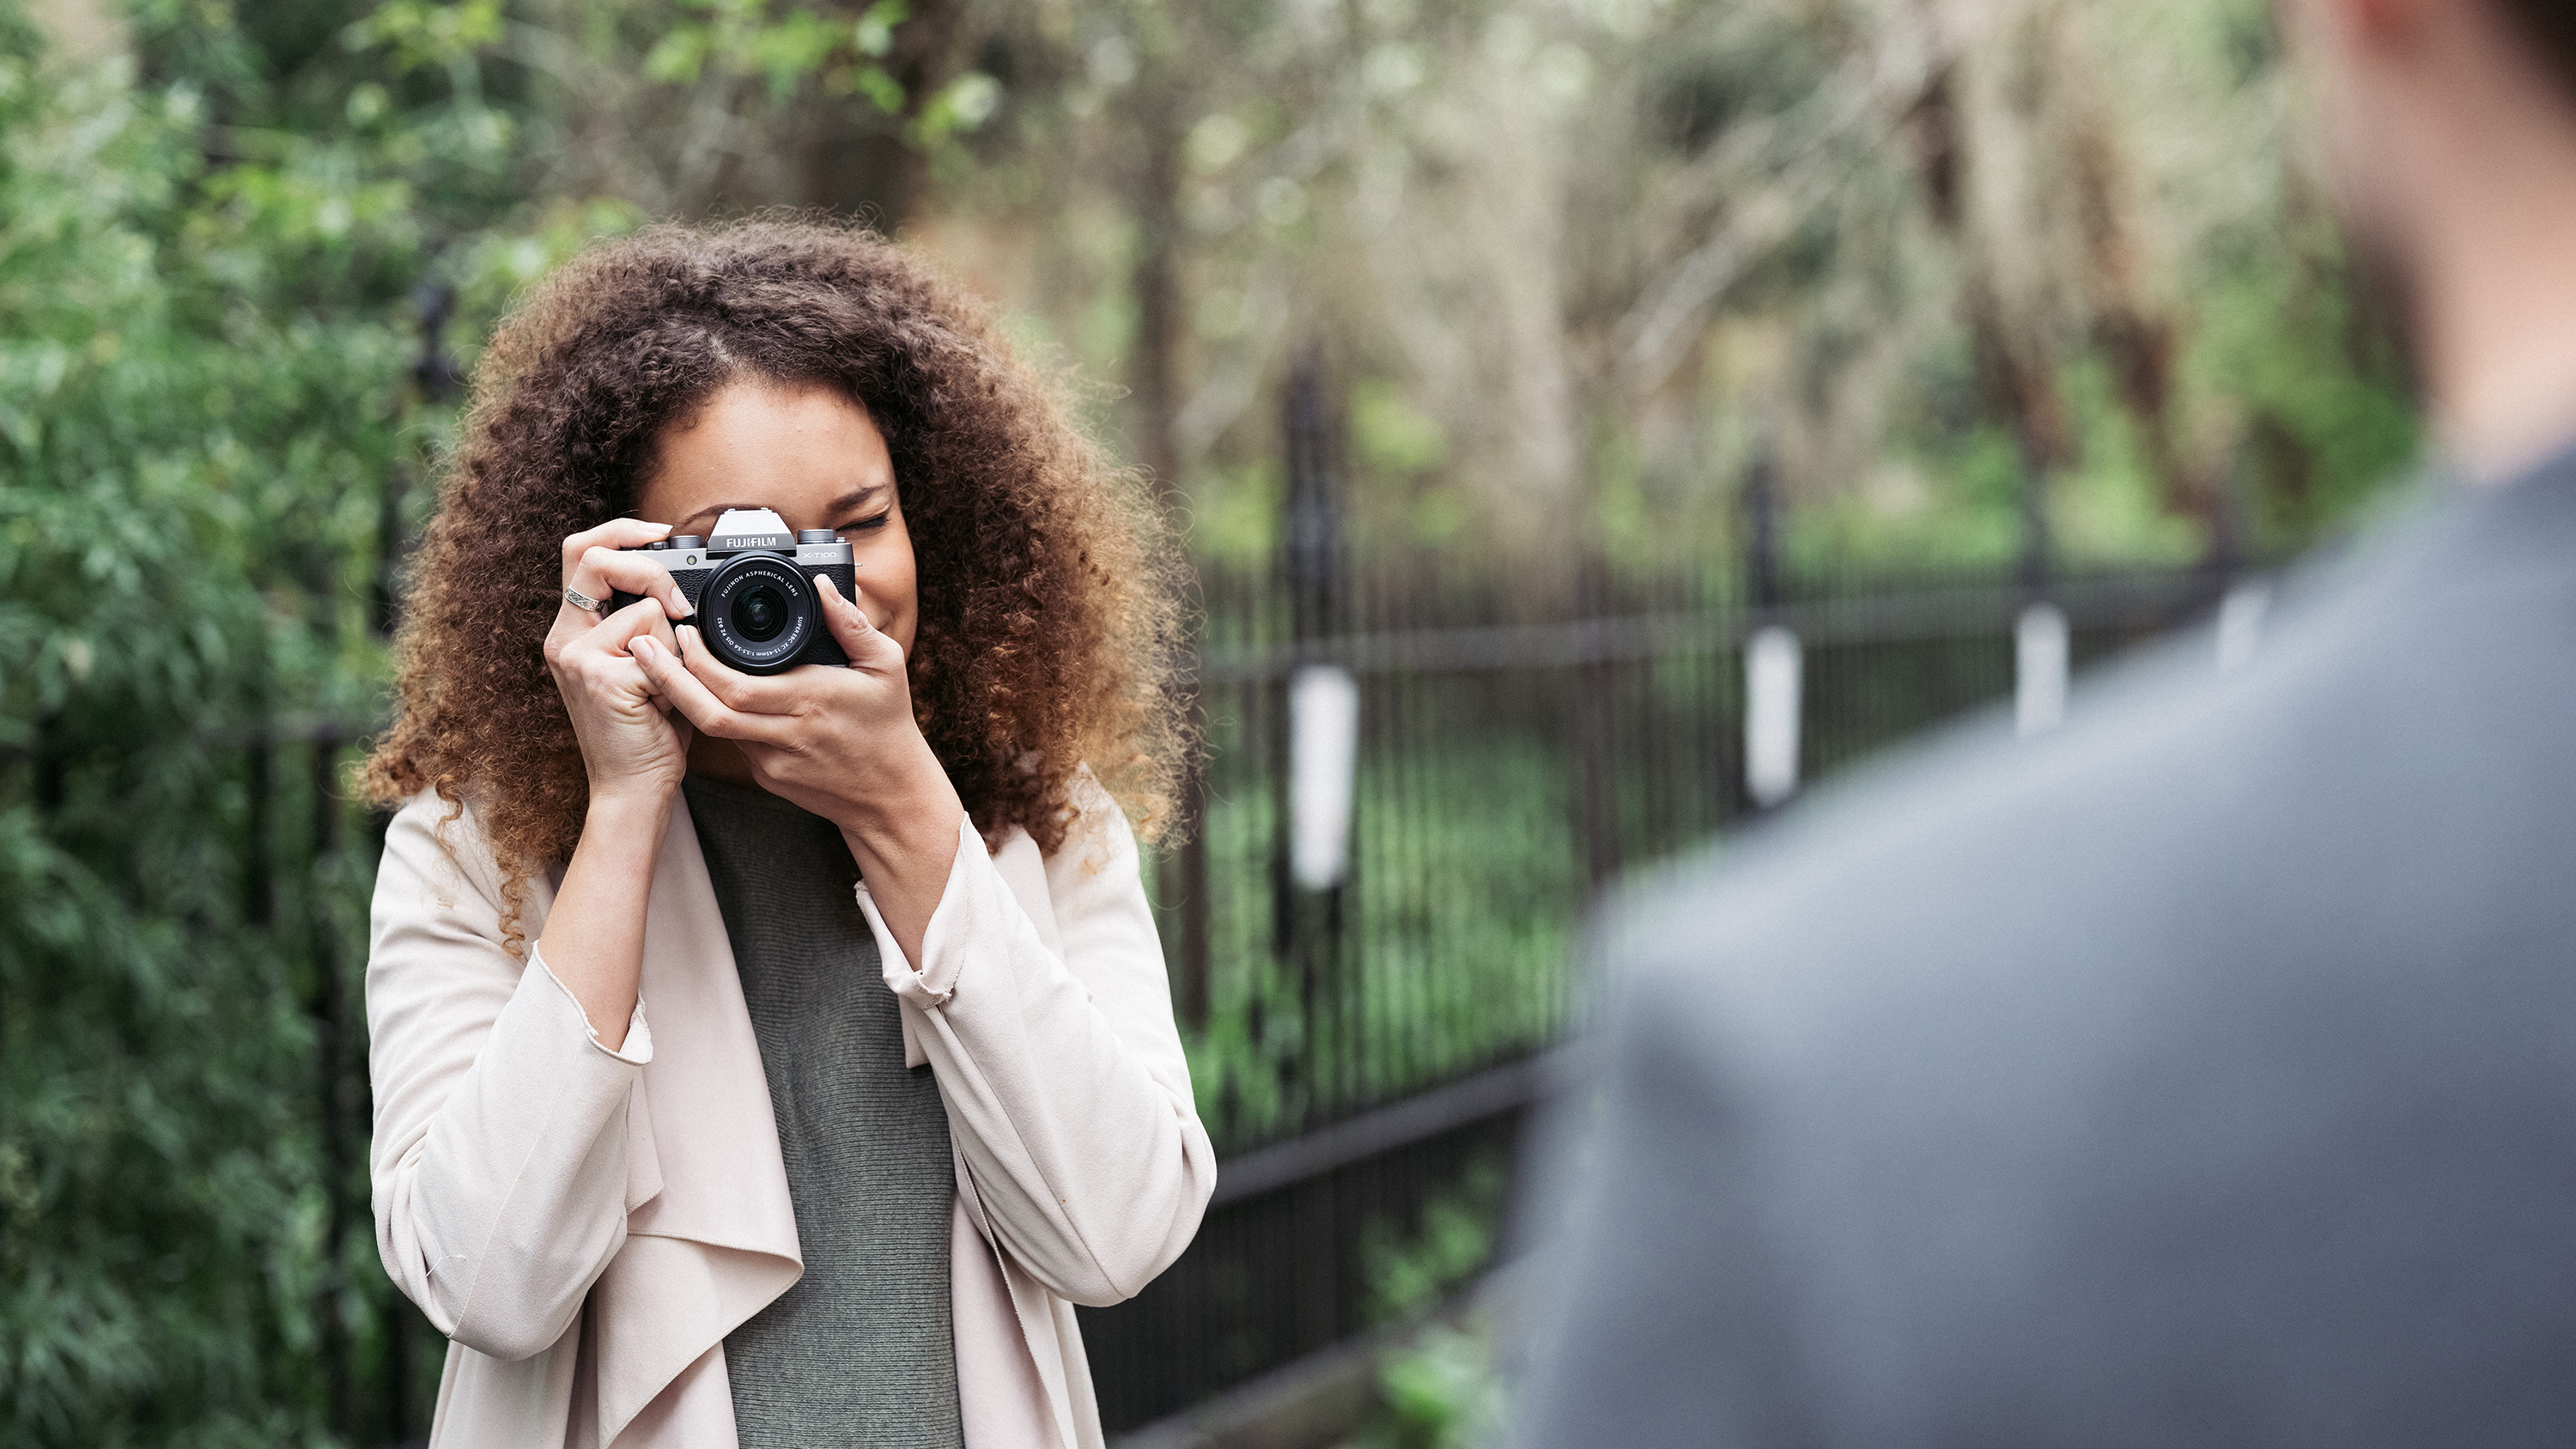 Best mirrorless camera for beginners 2018: 10 budget options for new users